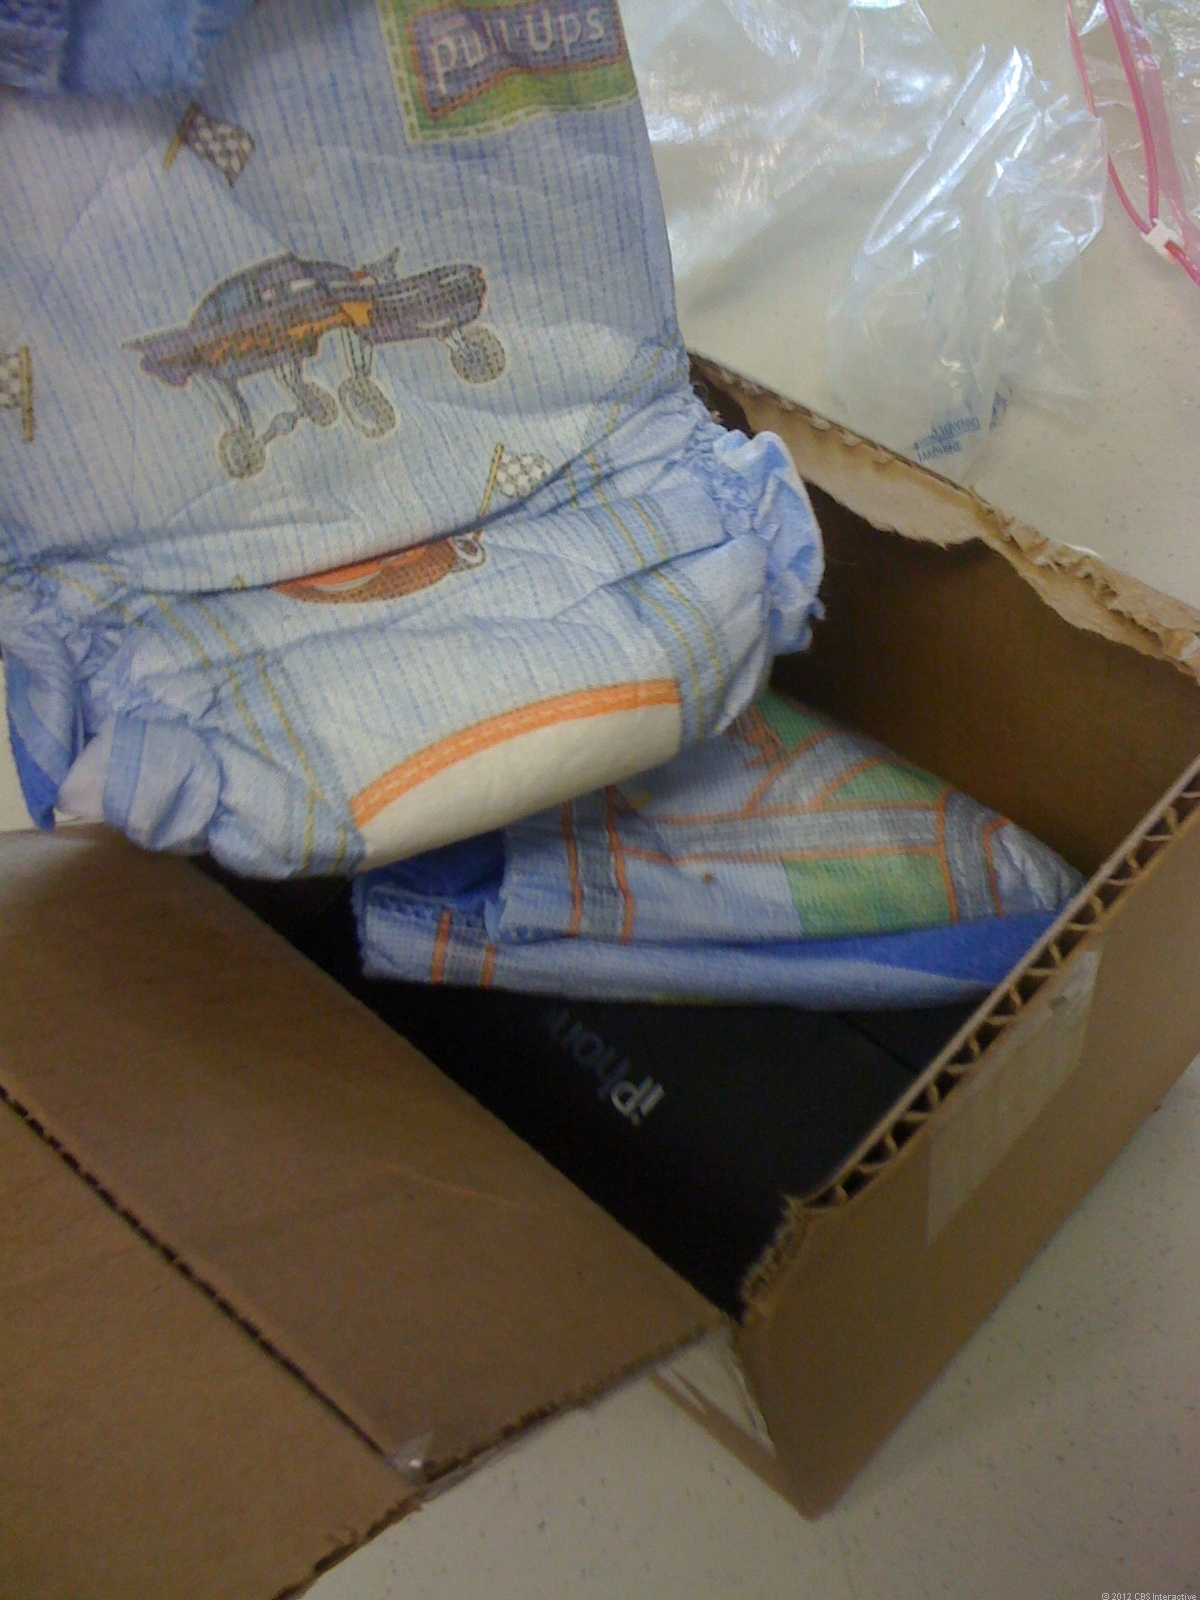 A used iPhone box padded with diapers sent in to Gazelle.